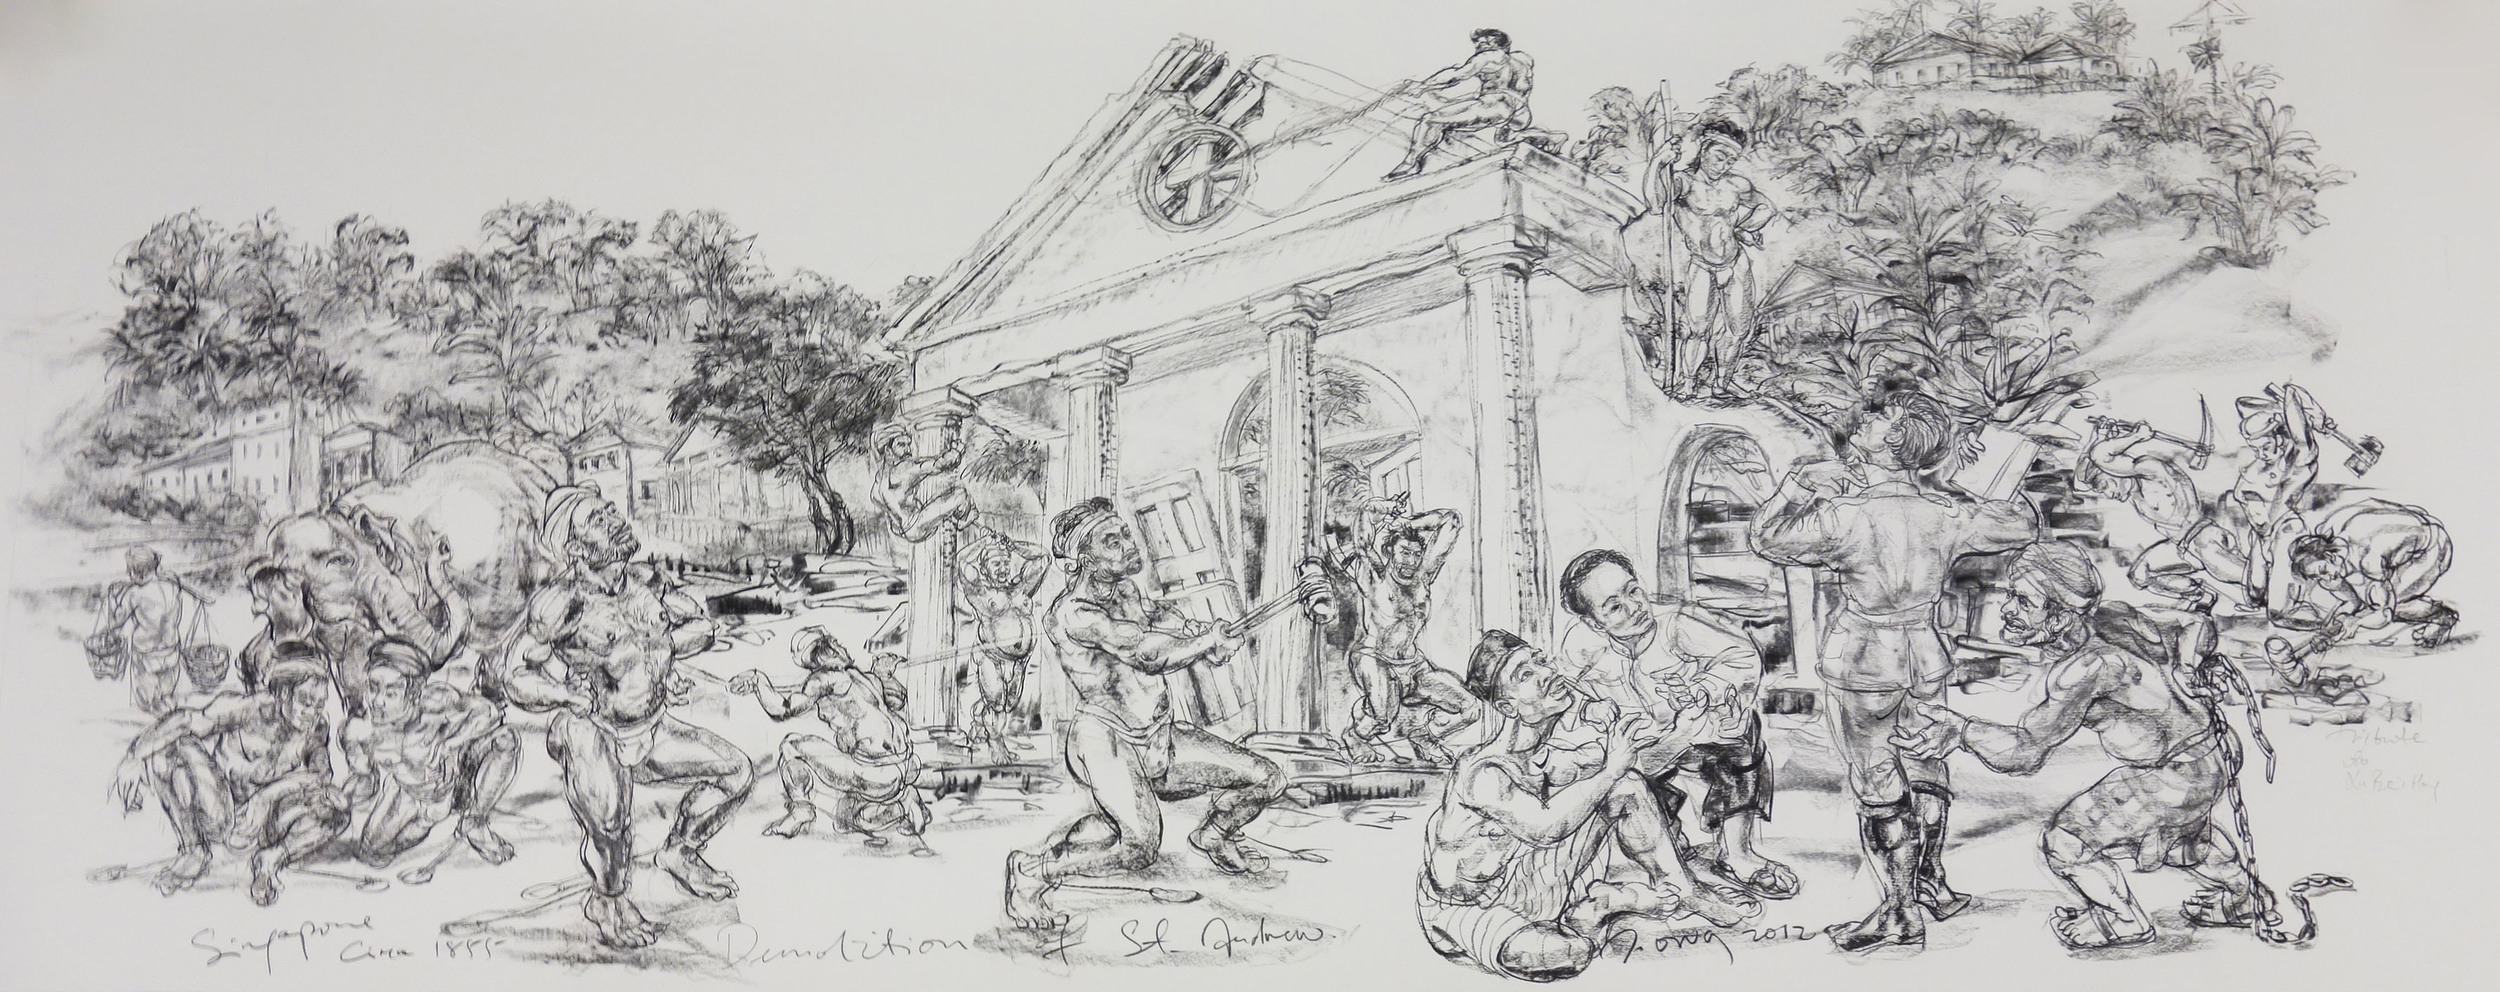 Demolition of St Andrew's  2012 Charcoal on paper 128.5 x 309 cm (paper)